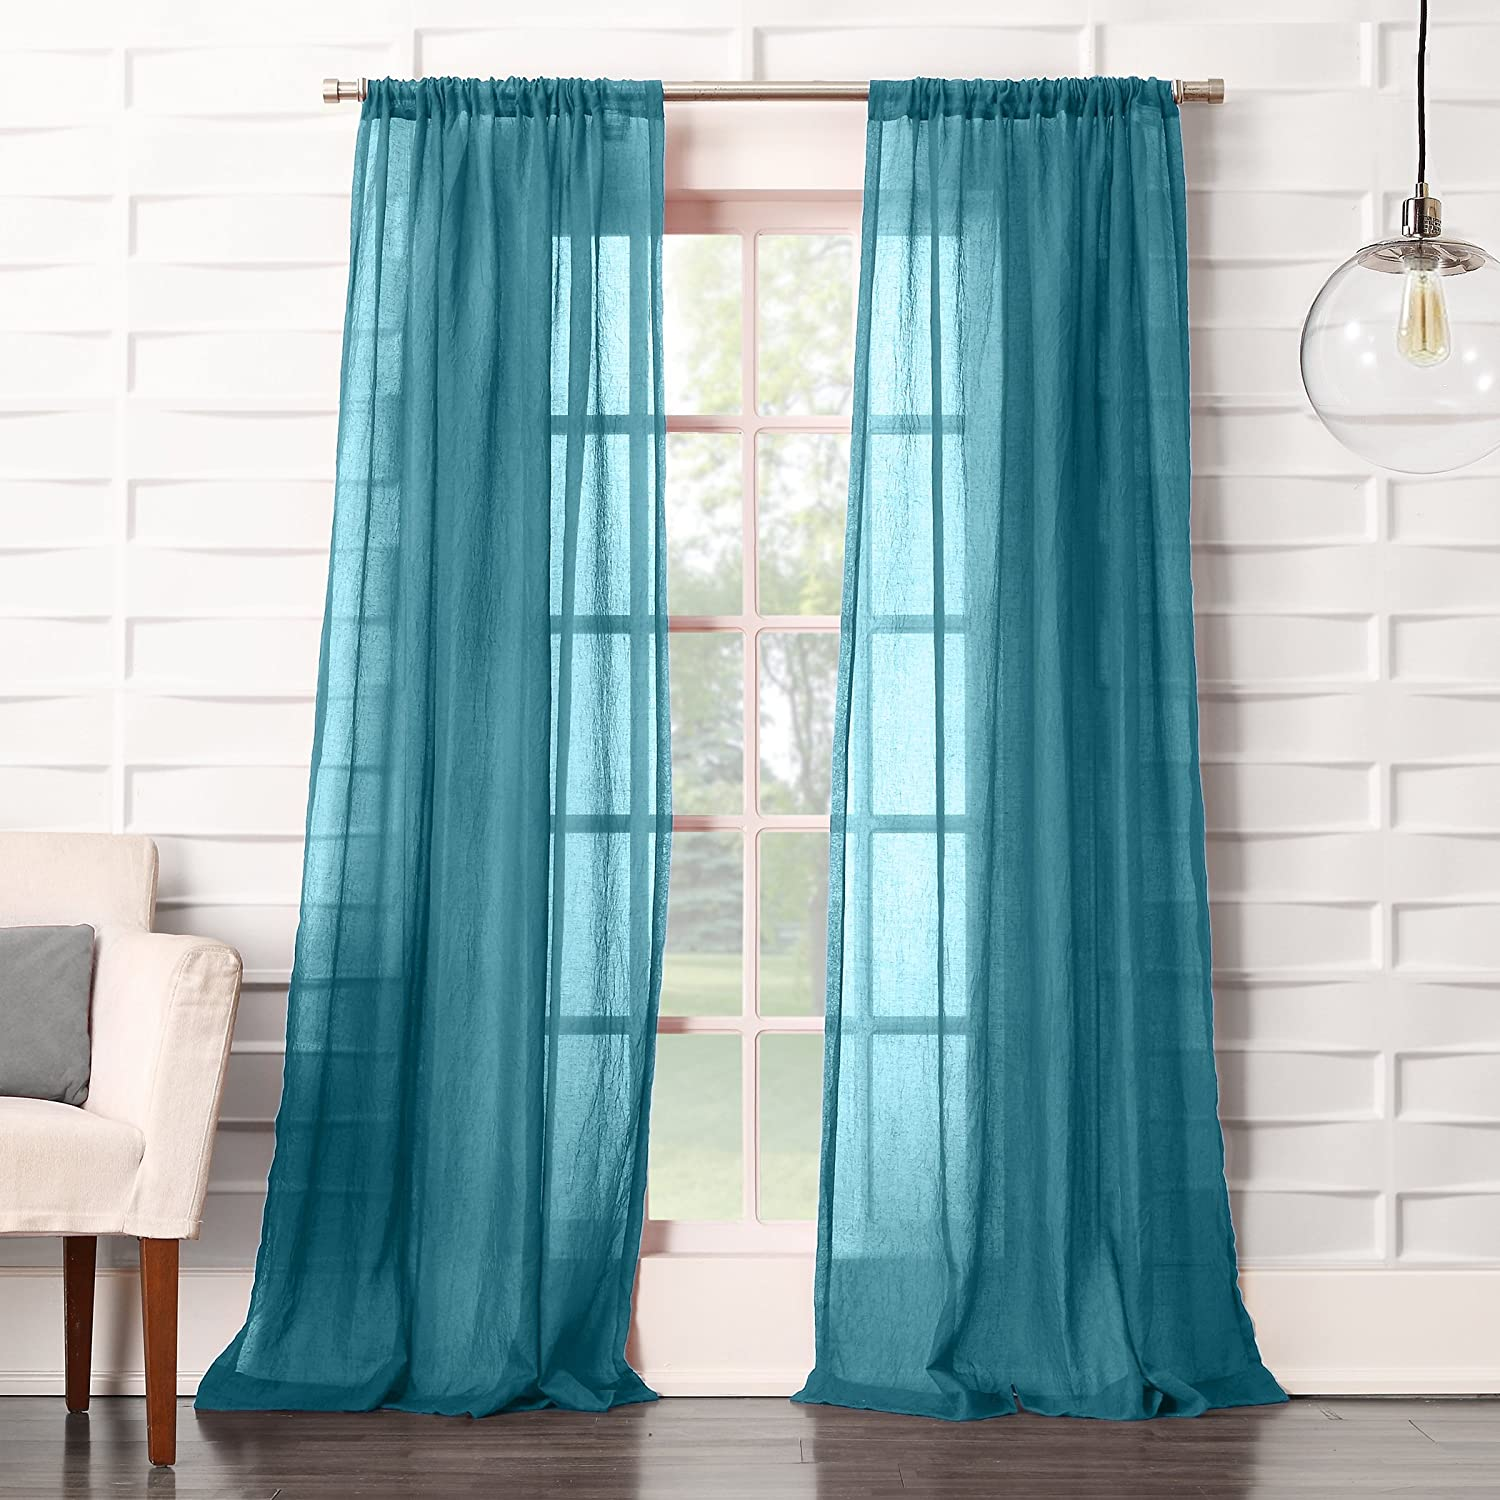 50 x 63 Teal Blue No 918 Tayla Soft Crushed Linen Texture Rod Pocket Curtain Panel